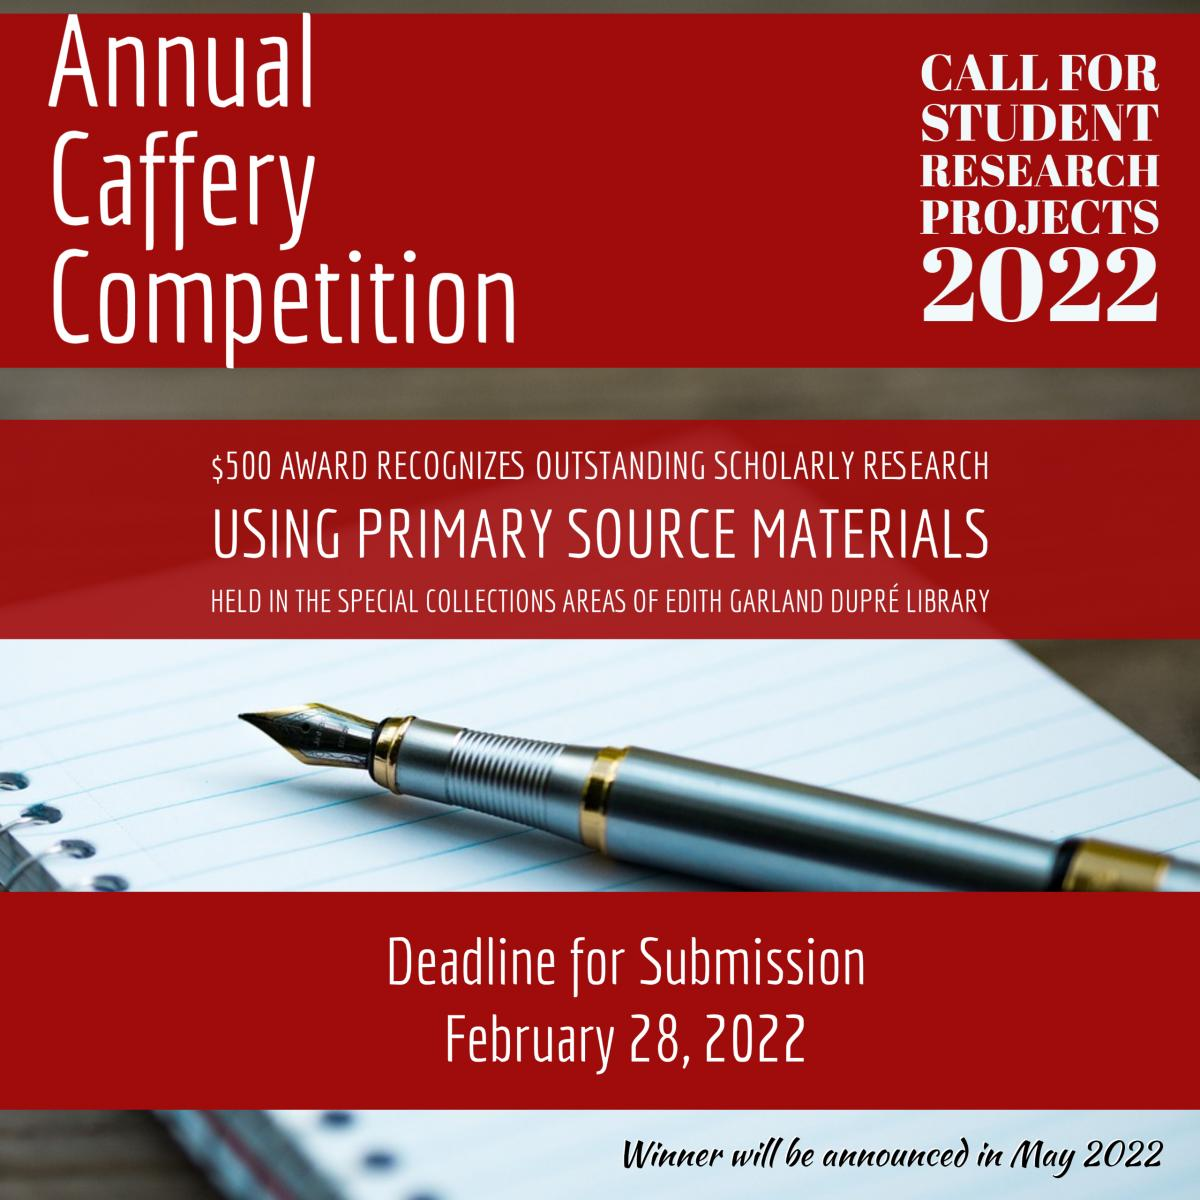 Annual Caffery Competition: Call for Student Research Projects Poster